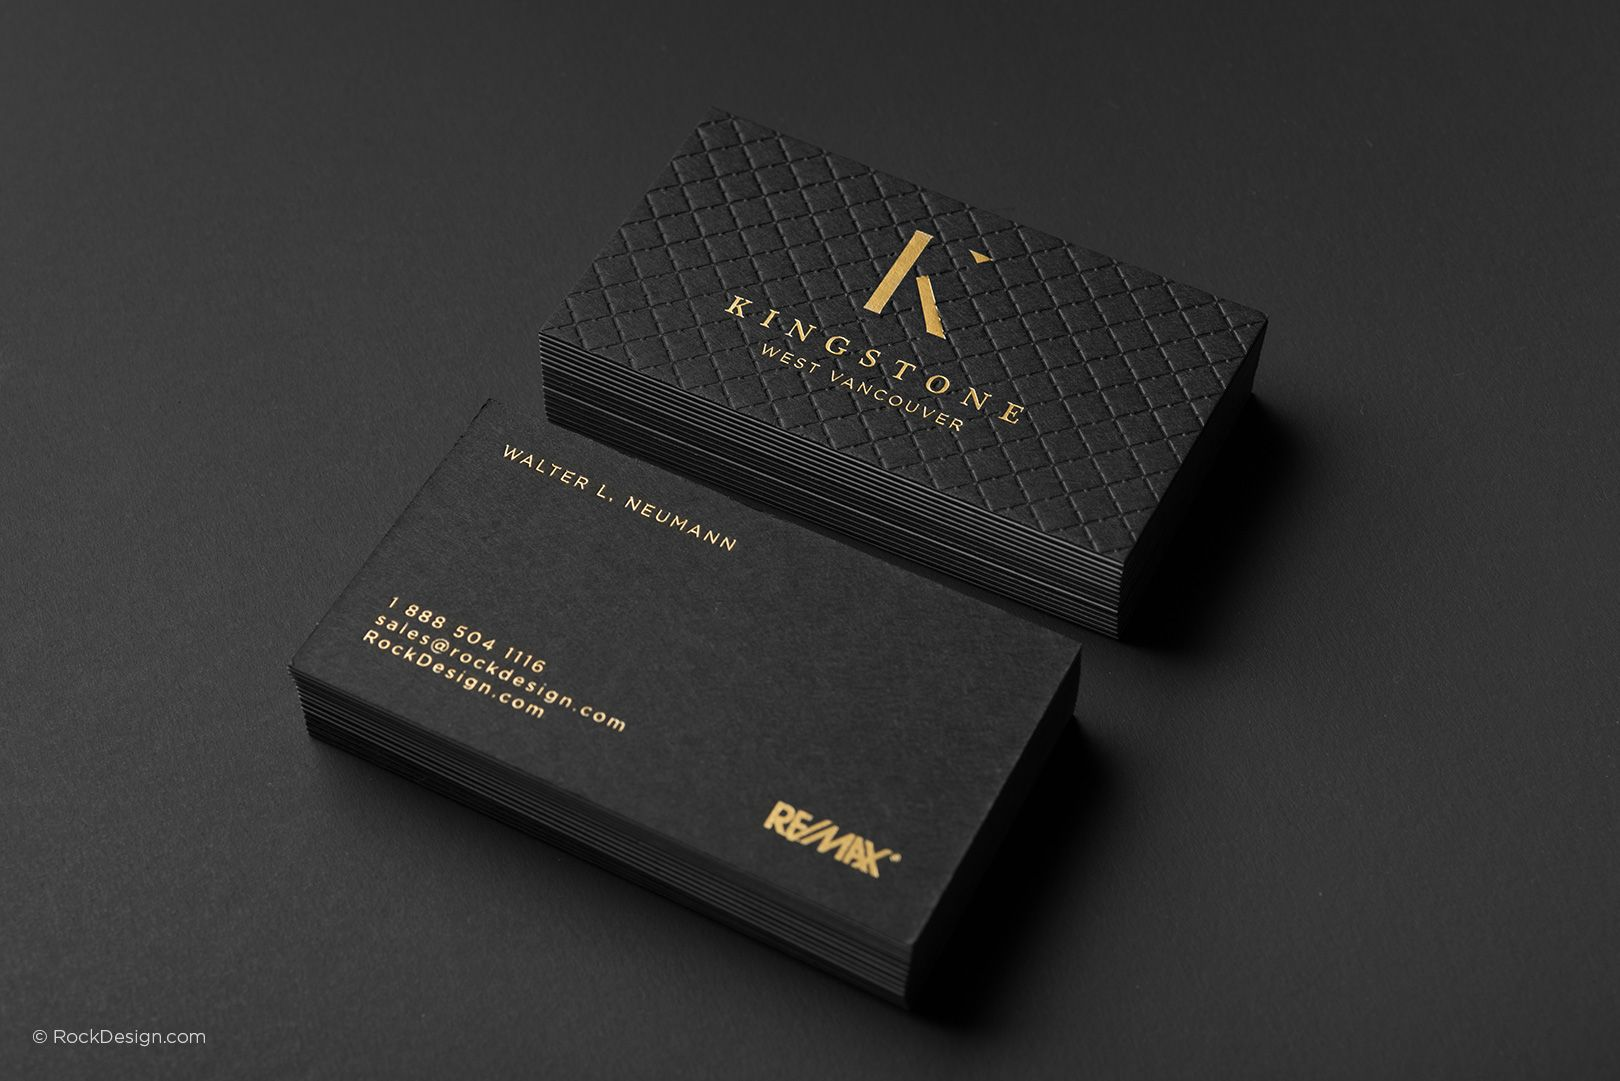 Luxury realtor triplex with gold foil business card template luxury realtor triplex with gold foil business card template kingstone rockdesign luxury business card wajeb Gallery